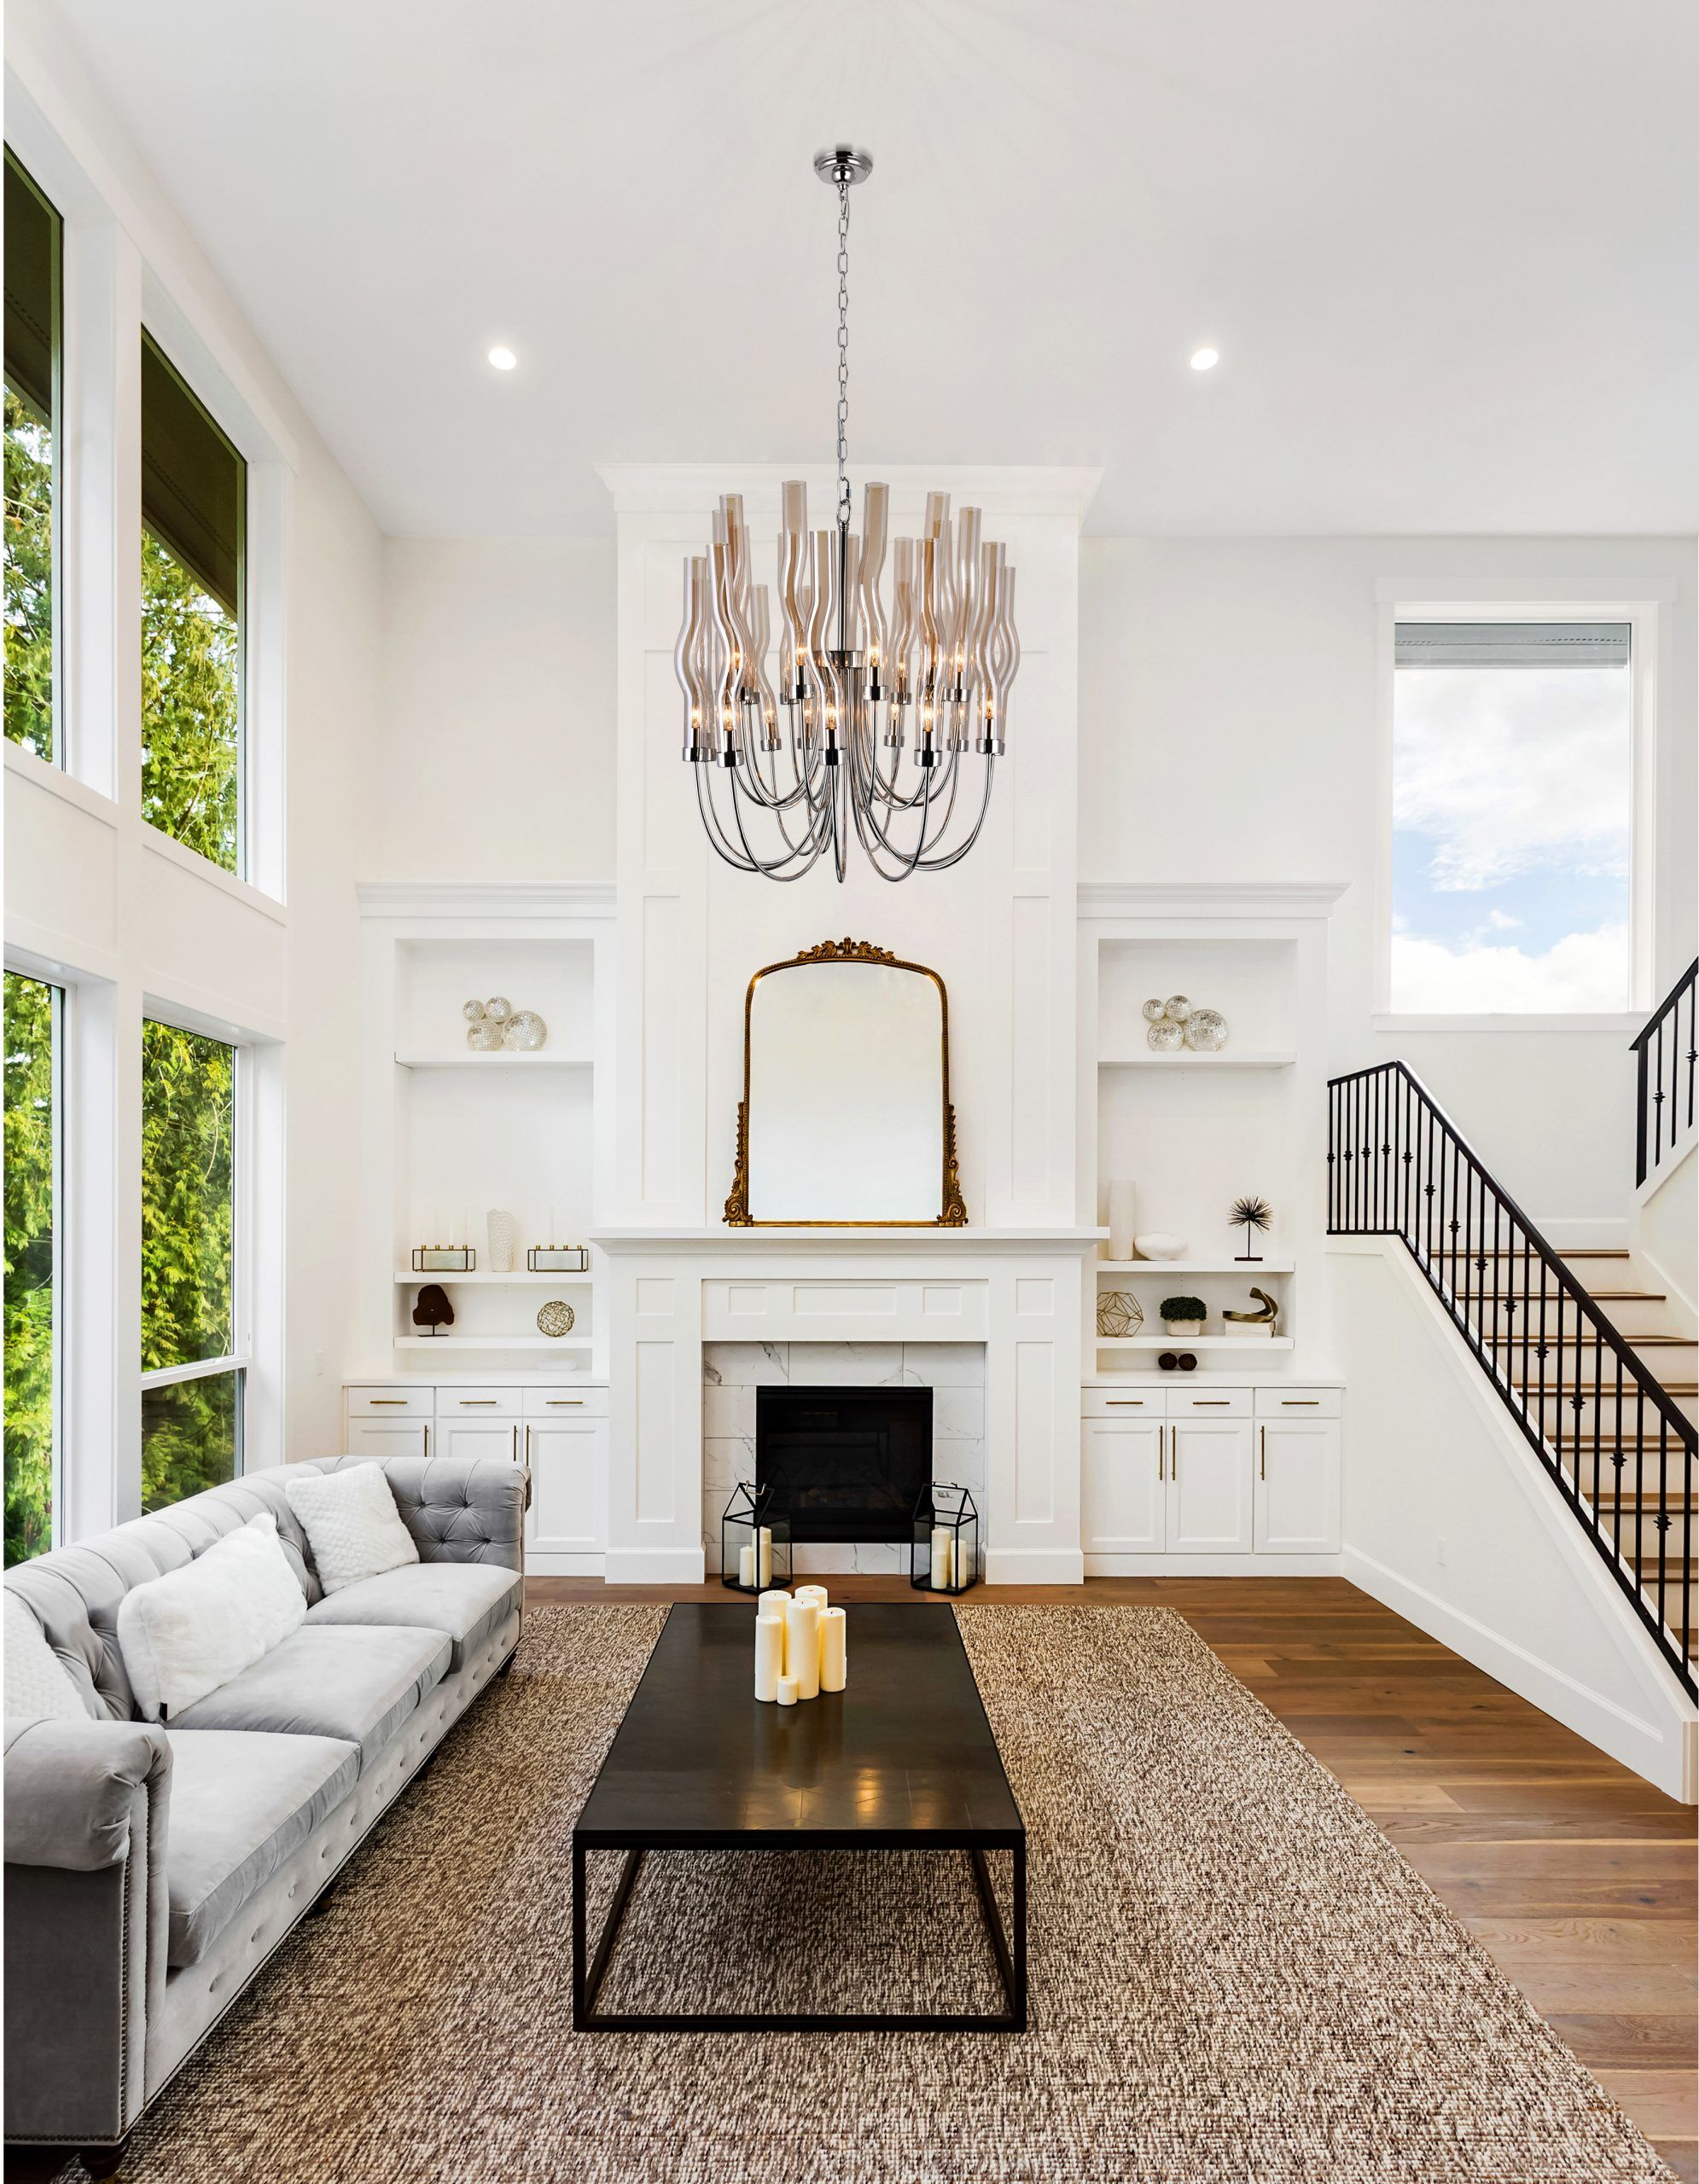 22 Light Chandelier with Polished Nickel Finish